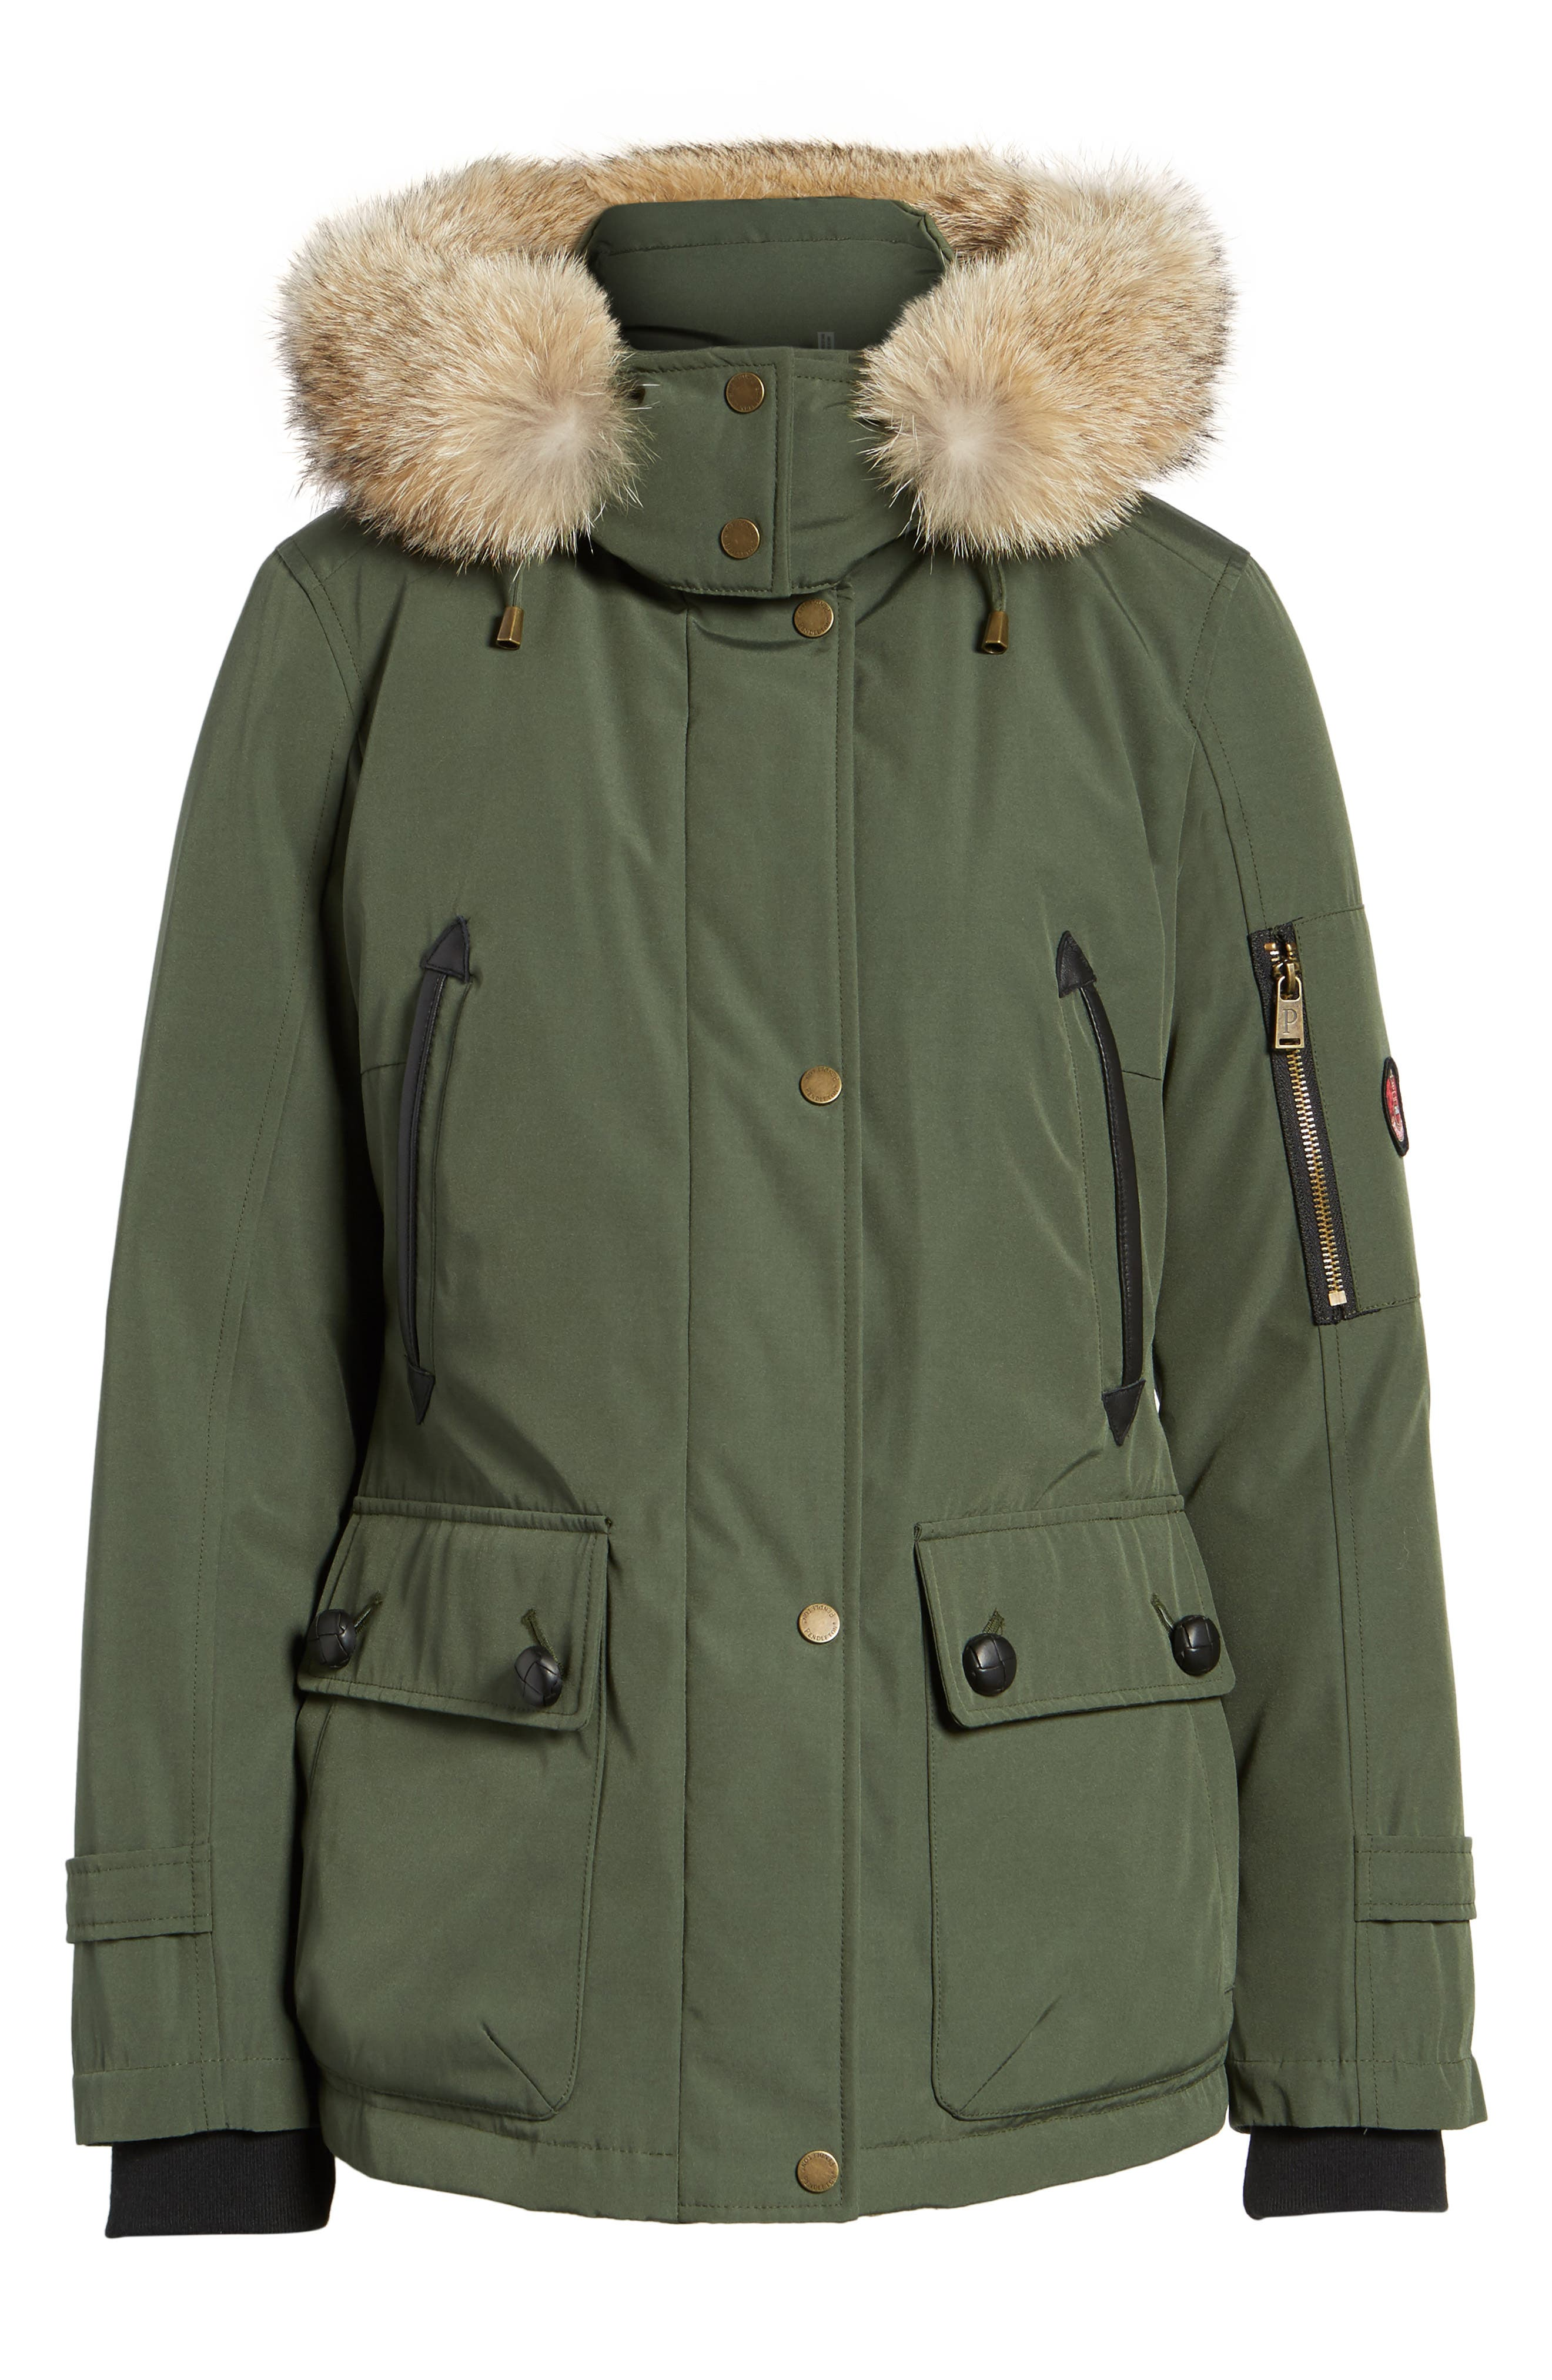 Bachelor Water Repellent Hooded Down Parka with Genuine Coyote Fur Trim,                             Alternate thumbnail 6, color,                             Olive